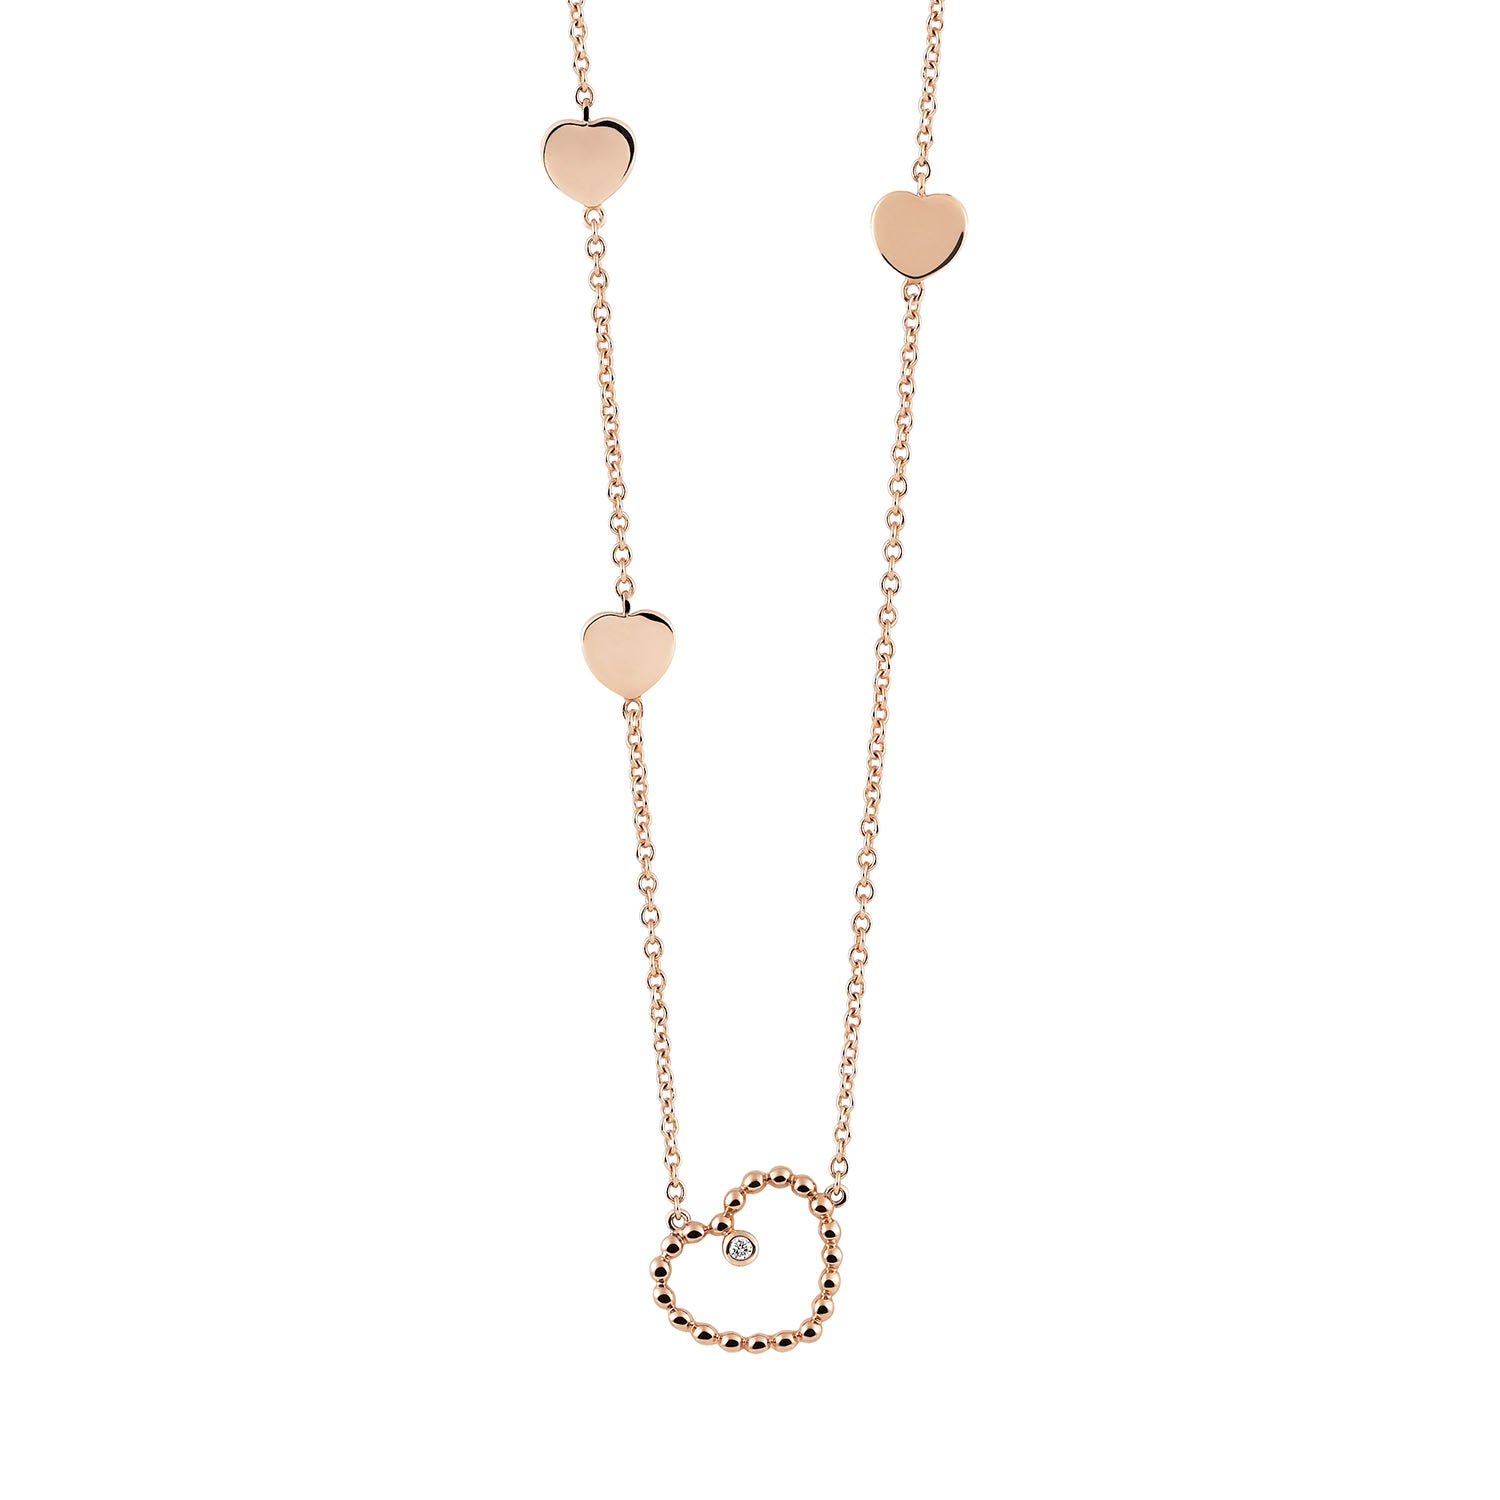 Palladio Heart Necklace in 18k Rose Gold with Diamond - Orsini Jewellers NZ